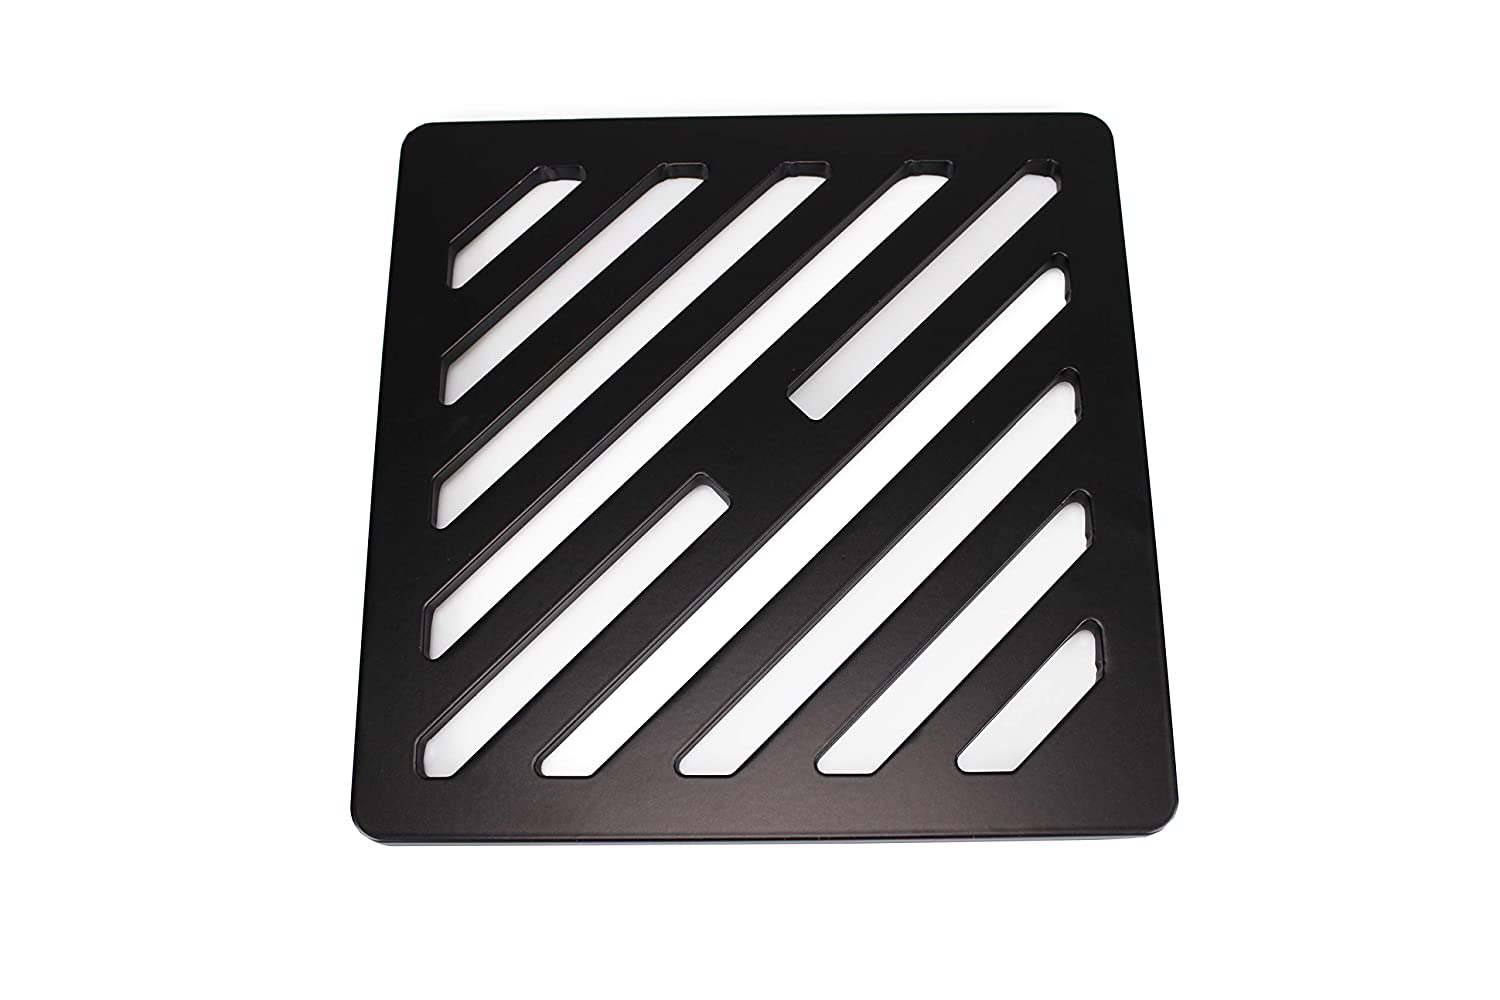 6.5 inch Square Solid Metal Steel Gully Grid Heavy Duty Drain Cover Grate Like cast Iron Stronger